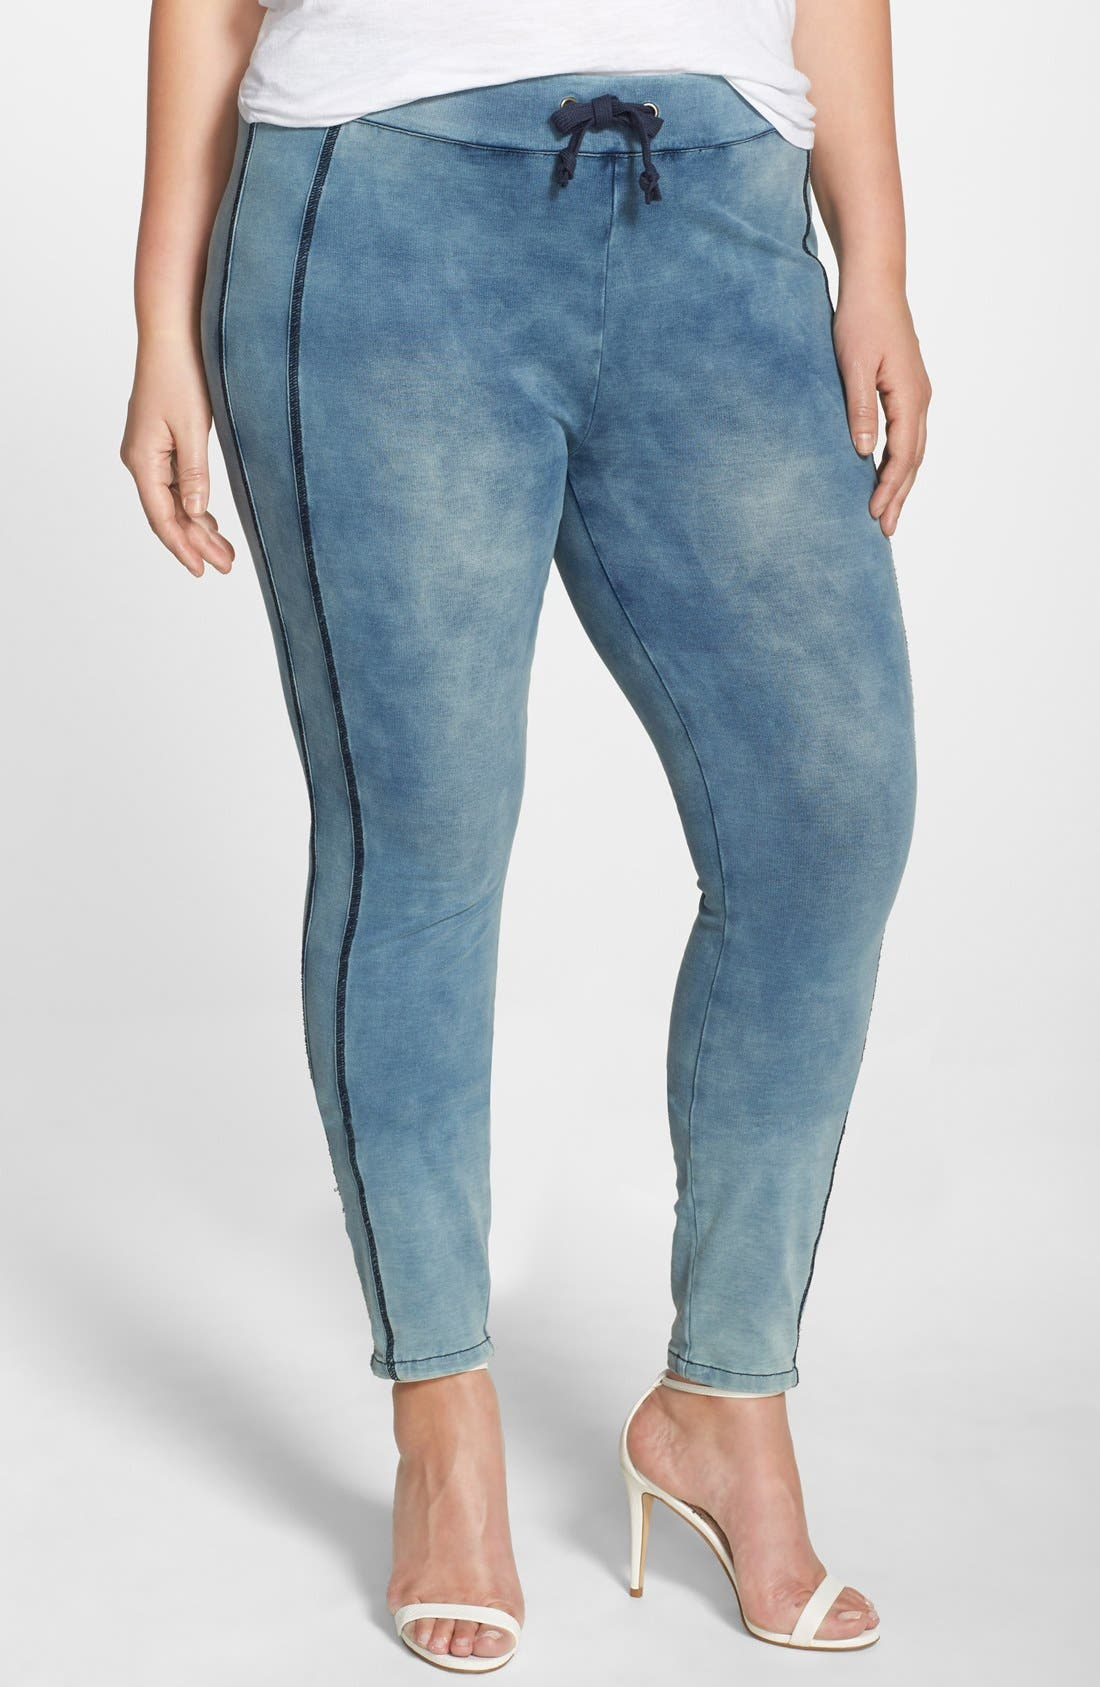 Main Image - Poetic Justice 'Naomi' Stretch Knit Denim Jogger Pants (Plus Size)